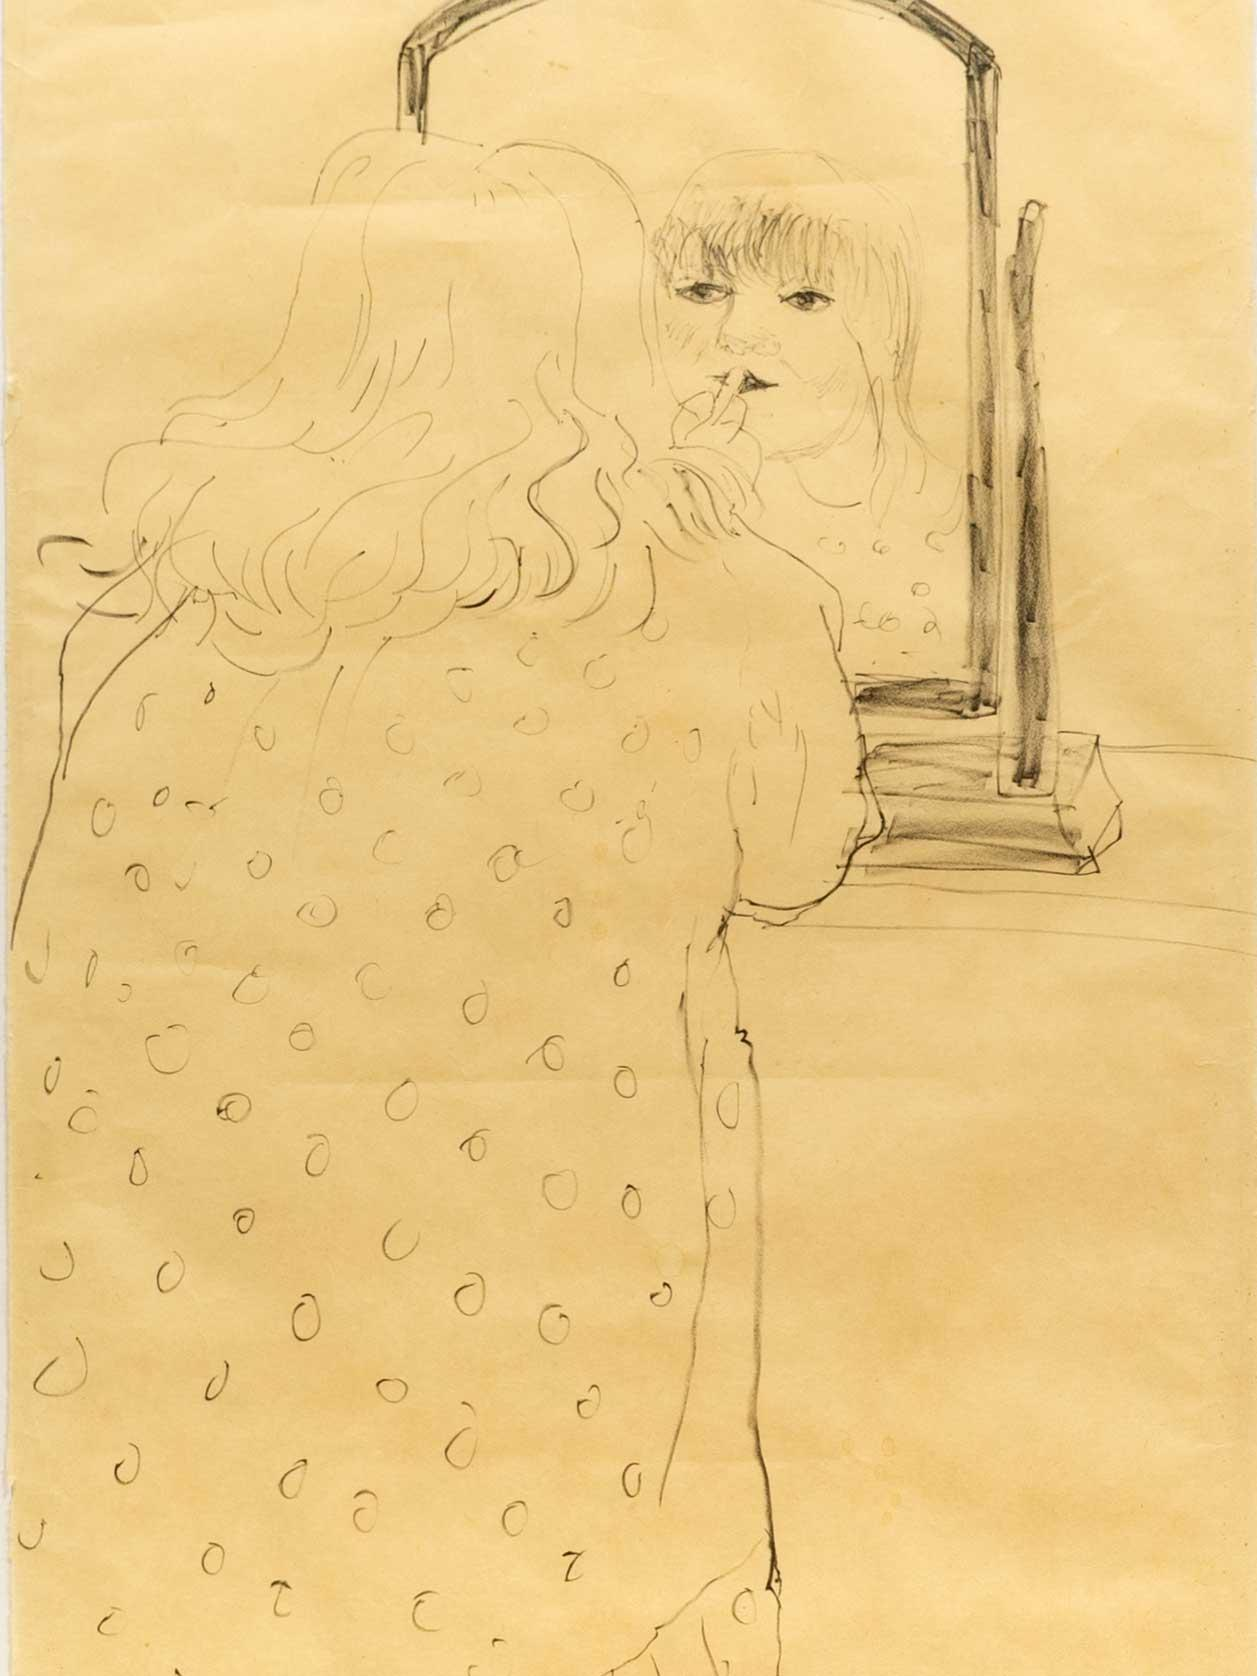 """David Hockney OM, CH, RA (English, born 1937) Lithograph on Japanese Okawara paper, """"Ann Putting On Lipstick"""", Signed Dated '79 & Numbered 55/75, 116 x 42 Sheet Size"""